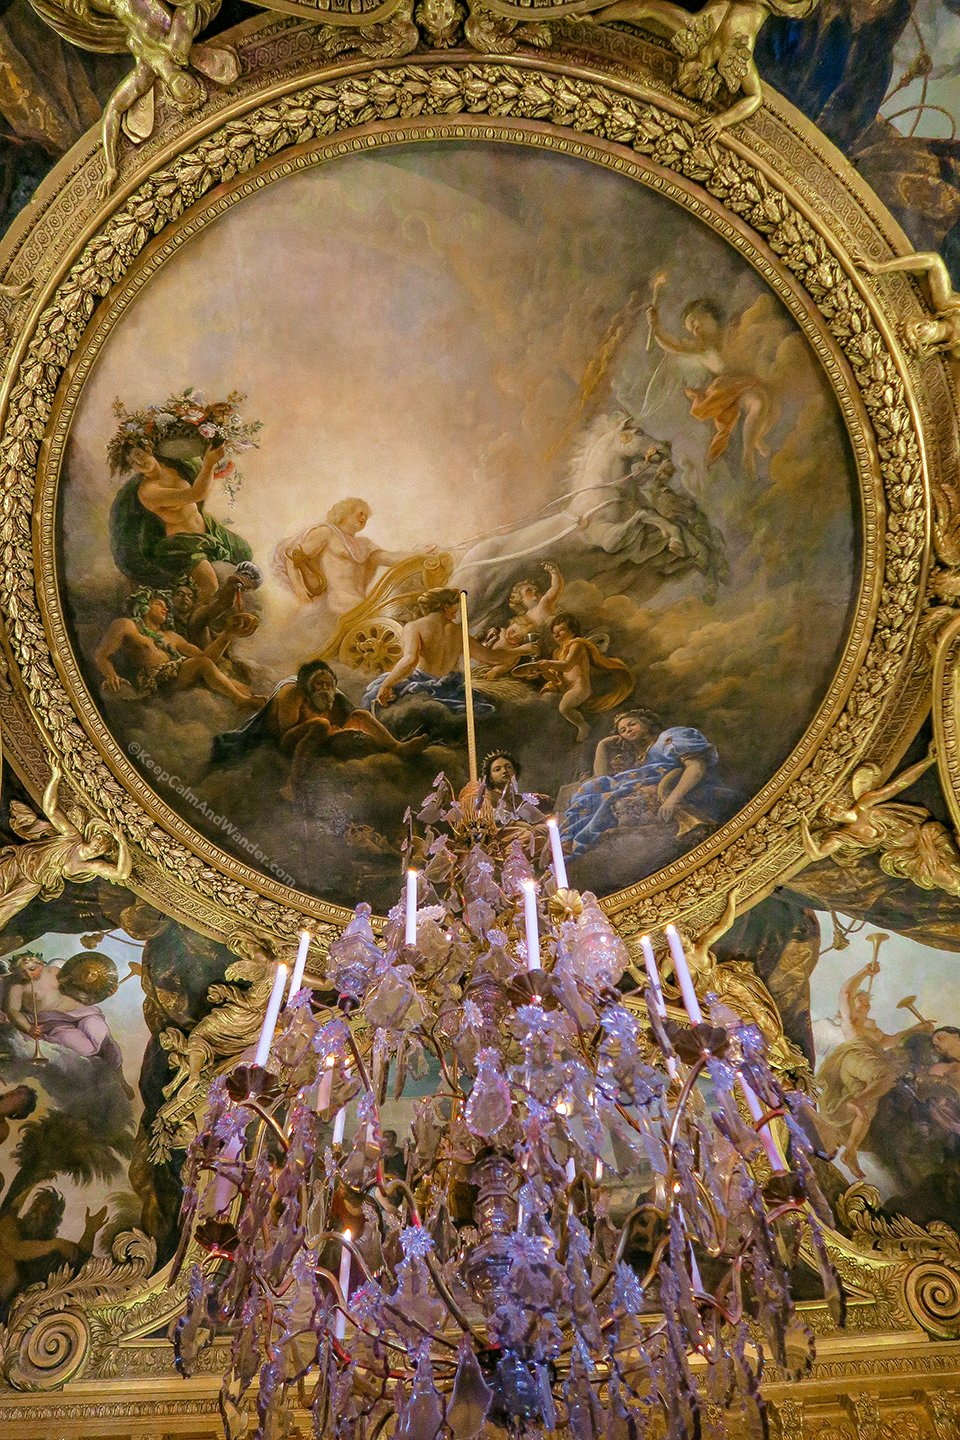 Apollo Room / Take A Peek: The Stately Rooms of the Palace of Versailles (France).